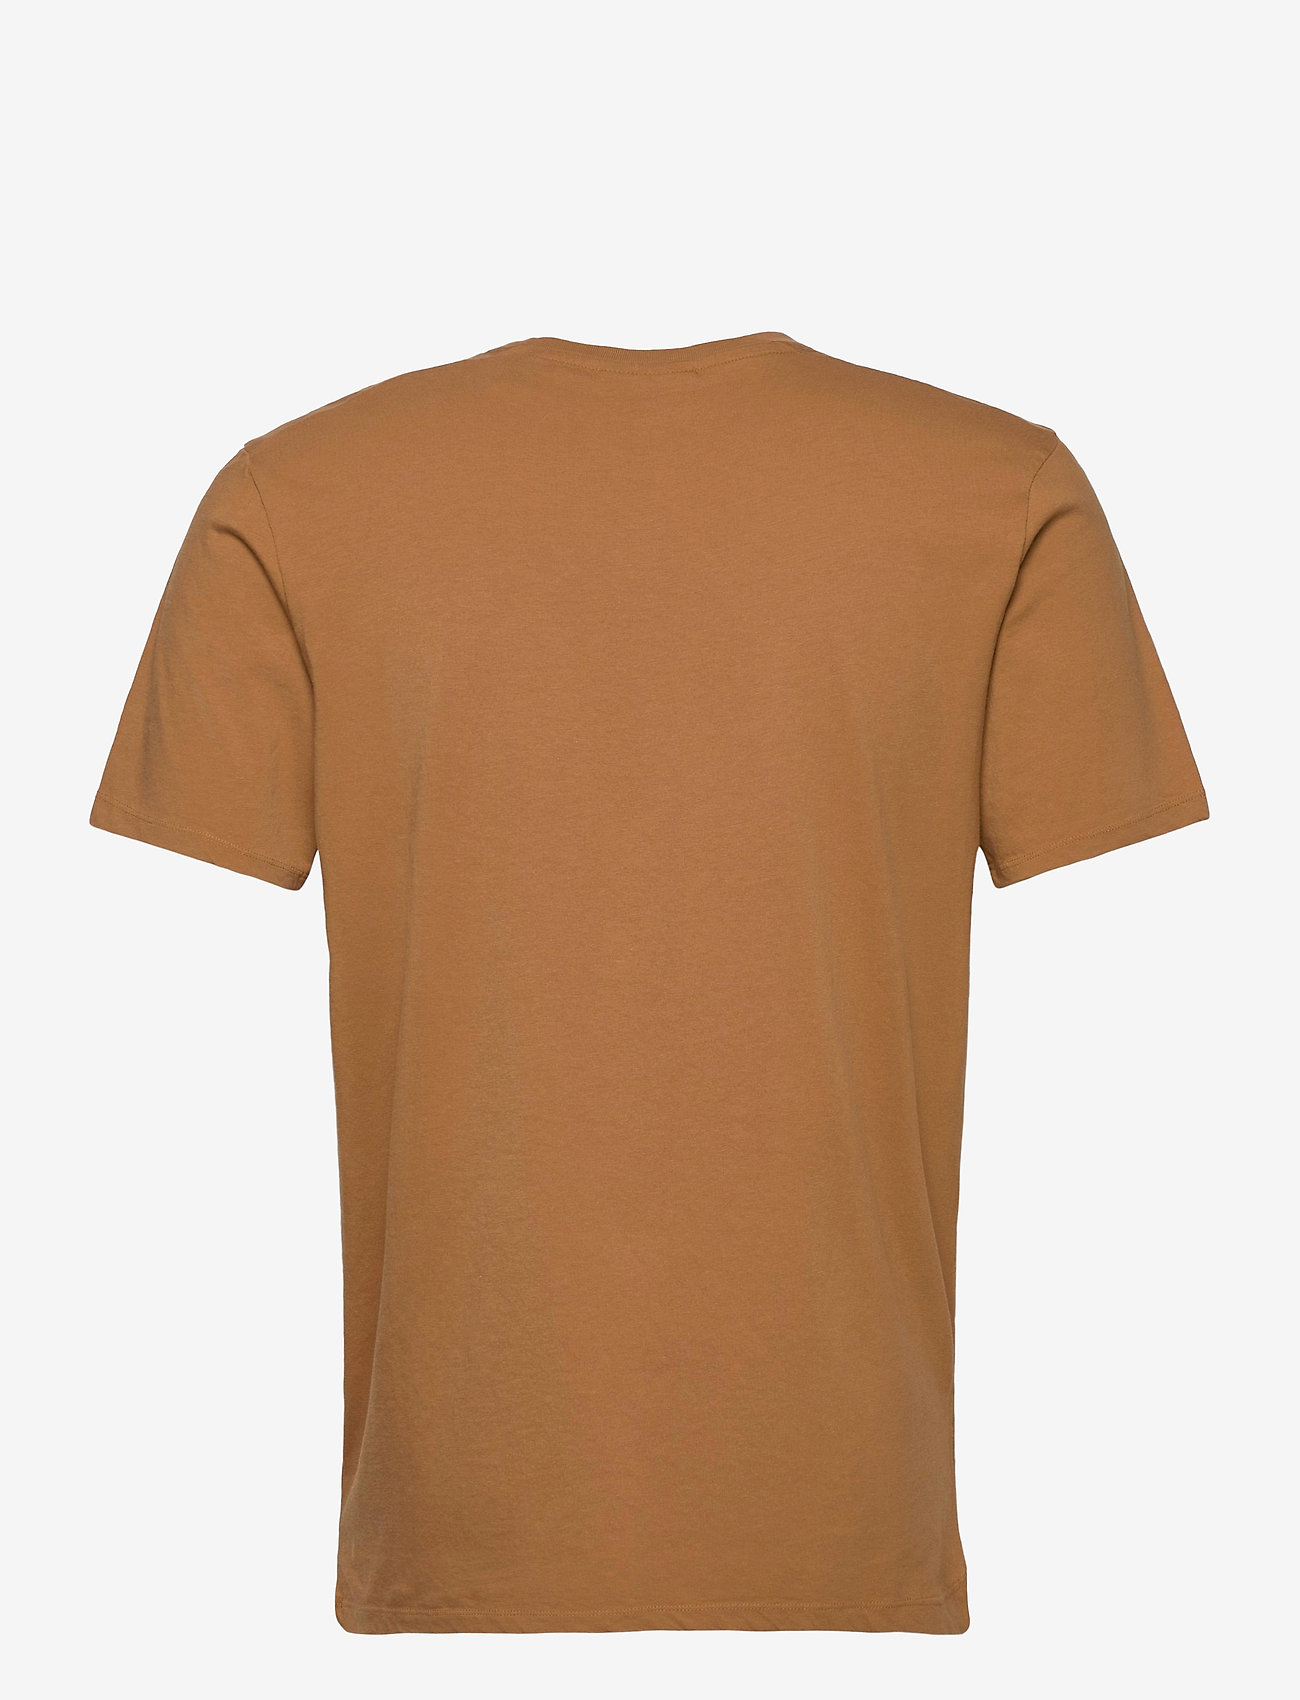 Scotch & Soda - Fabric dyed pocket tee - basic t-shirts - tobacco - 1